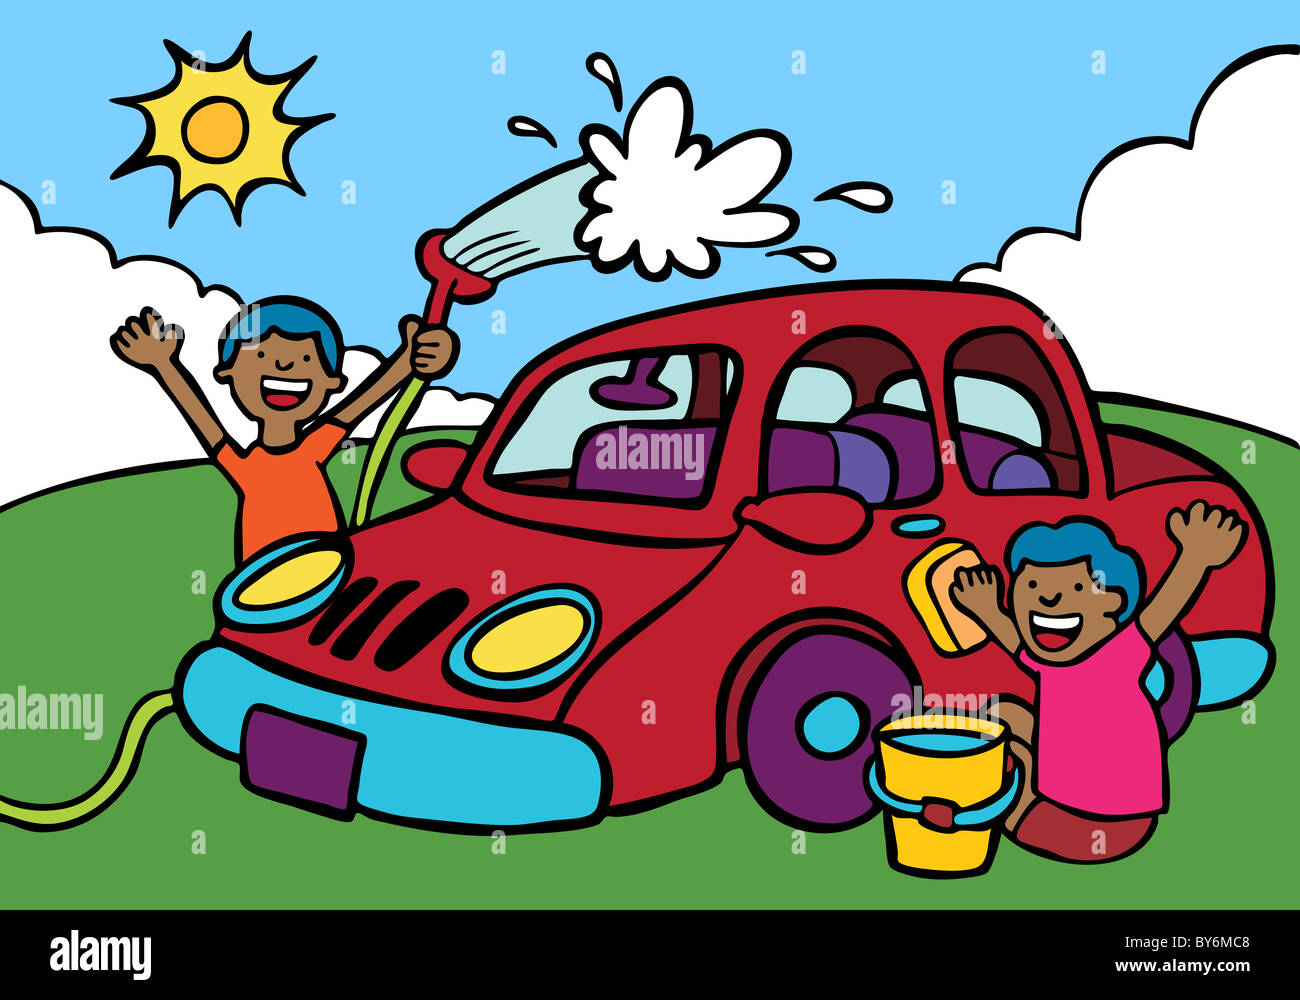 illustration children cleaning car stockfotos illustration children cleaning car bilder alamy. Black Bedroom Furniture Sets. Home Design Ideas